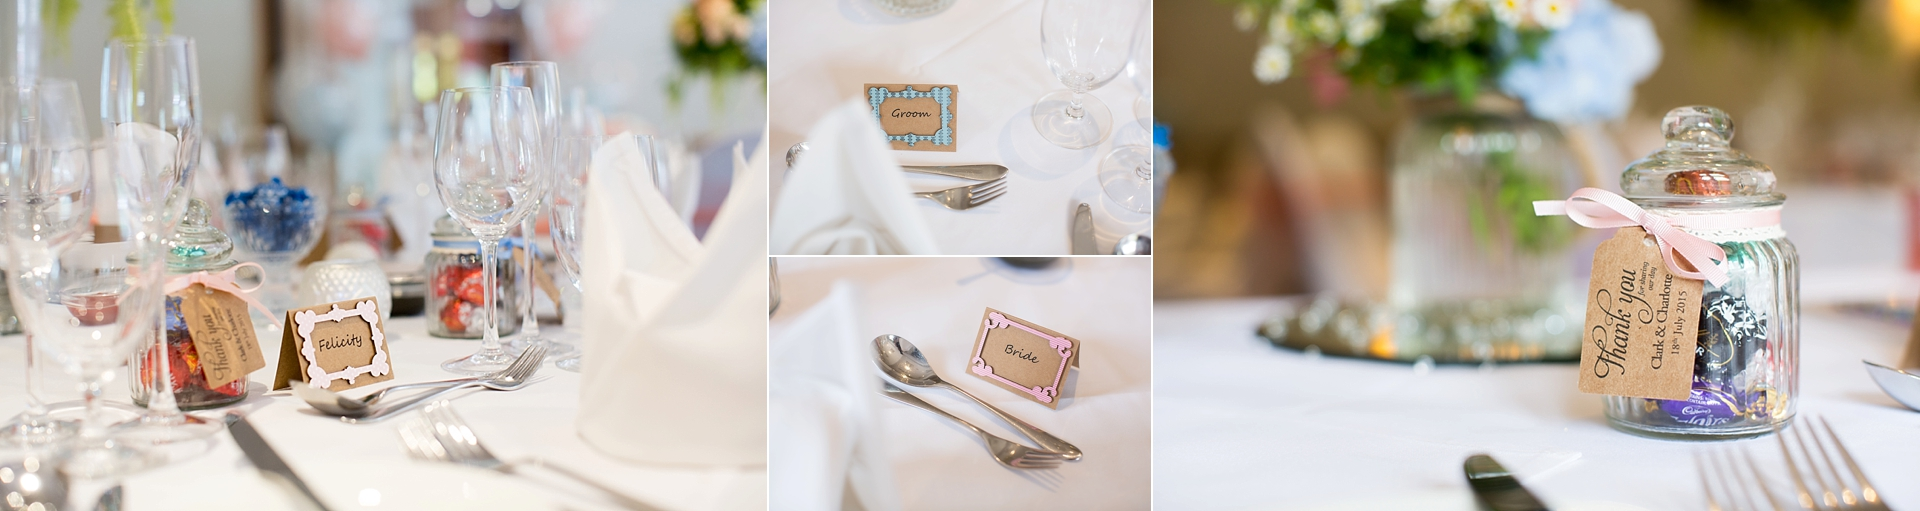 wedding photographer stoke on trent staffordshire manor house alsager 9.jpg